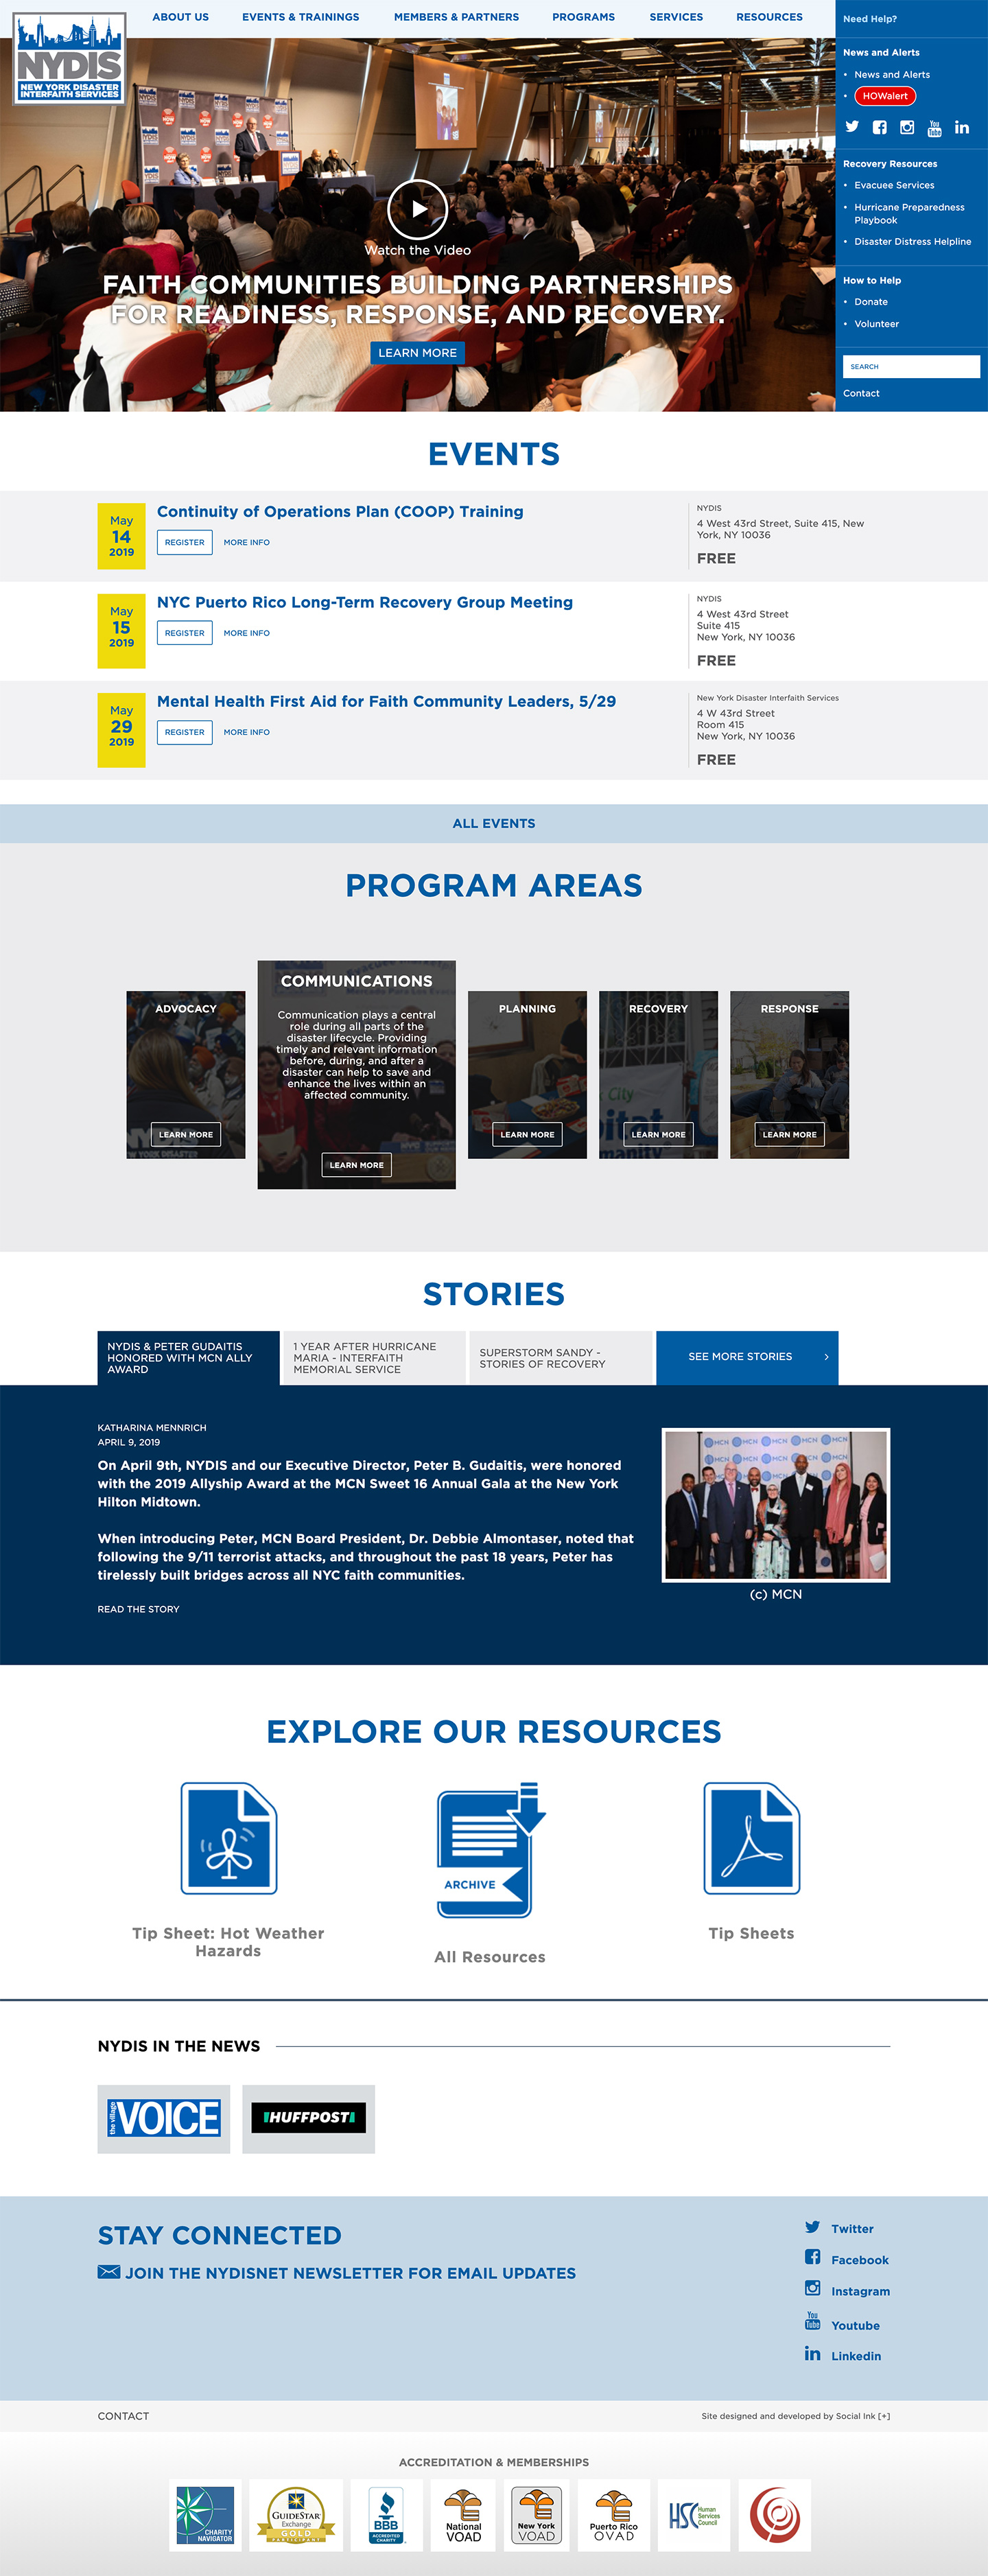 NYDIS: New York Disaster Interfaith Services: NYDIS Homepage